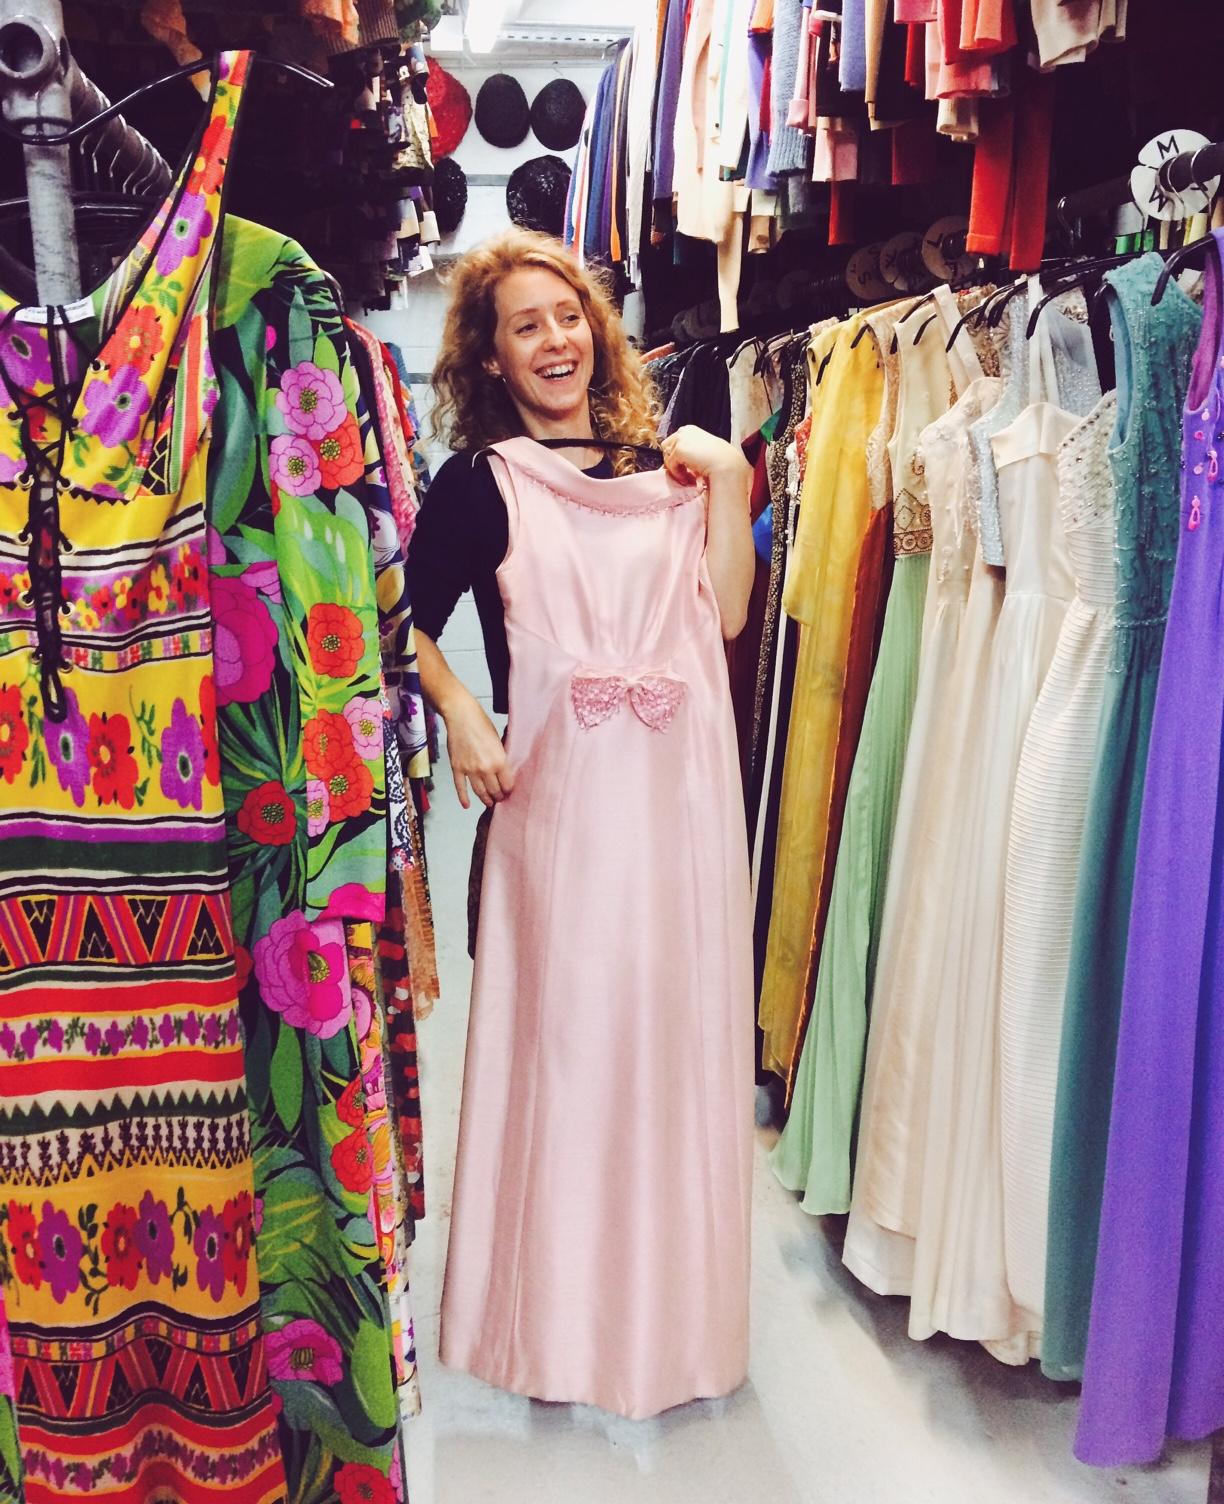 """Oh Hello ! It's me at a rental costume shop in Paris """"Les Mauvais Garçons"""" while sourcing costumes for a show... that had nothing to do with the 1960s lol ! But you know... I got caught up by this alley ;)"""